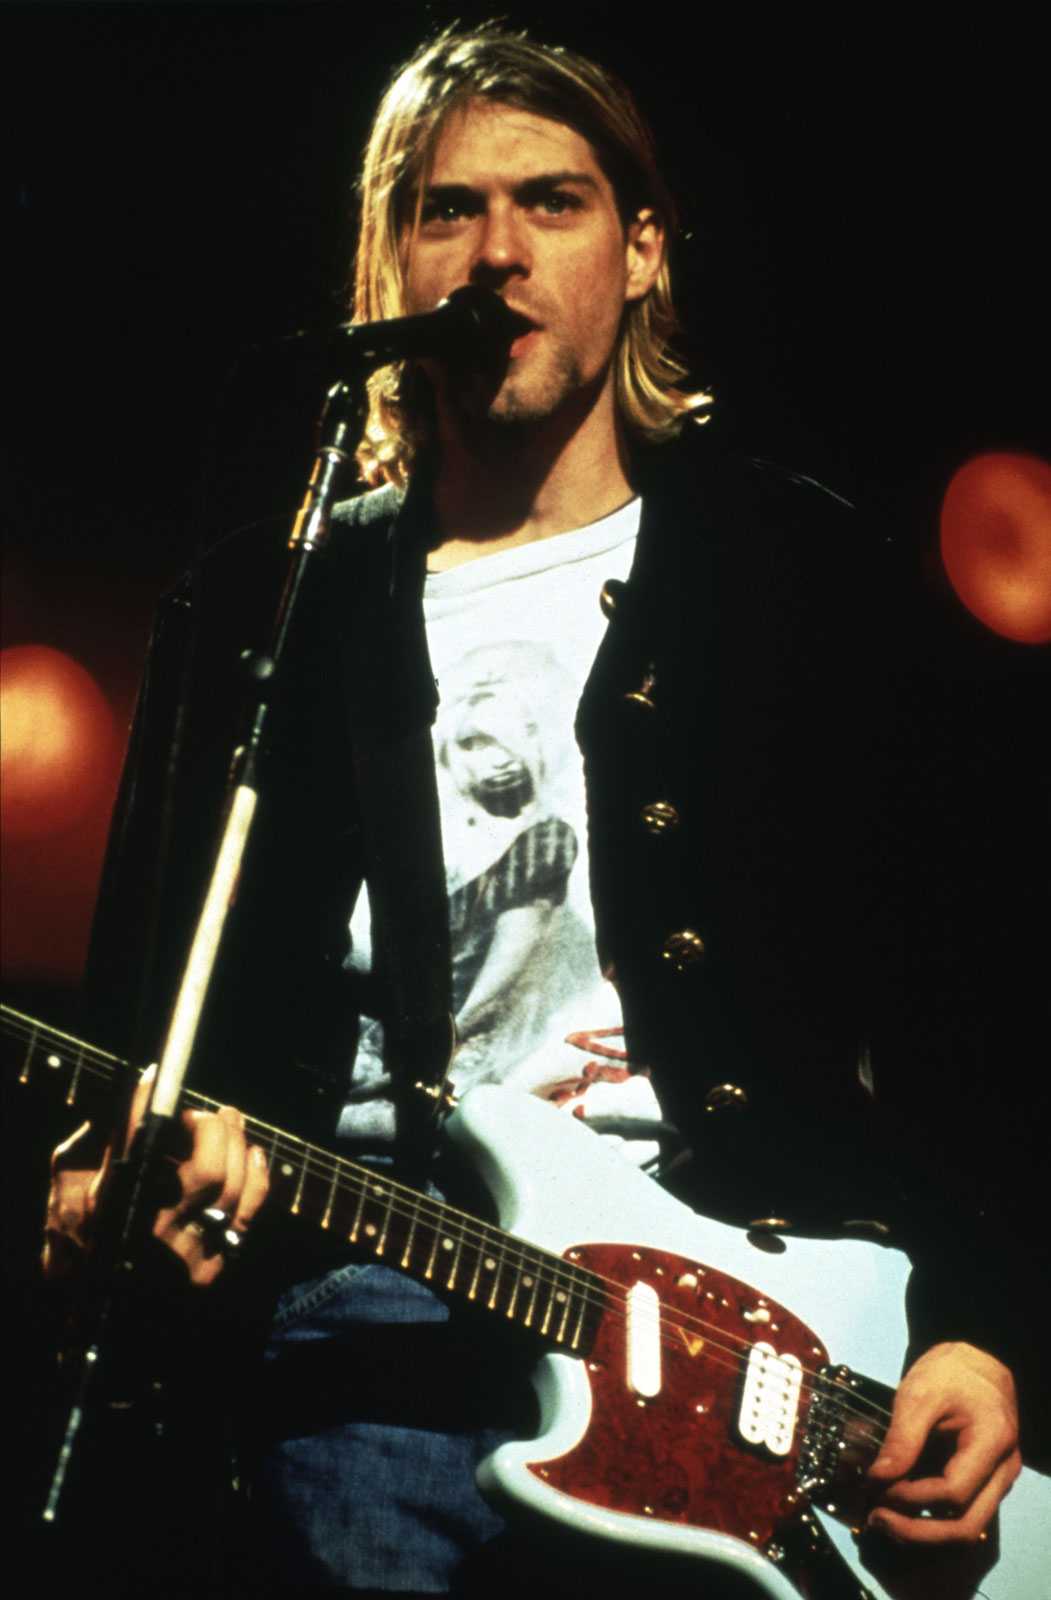 Kurt Cobain, performing with Nirvana in 1993. Cobain was the lead singer of Nirvana, who were basically everything worth listening to in Grunge music. Photo from  Encyclopedia Britannica , ultimately from Pictorial Press/Alamy.